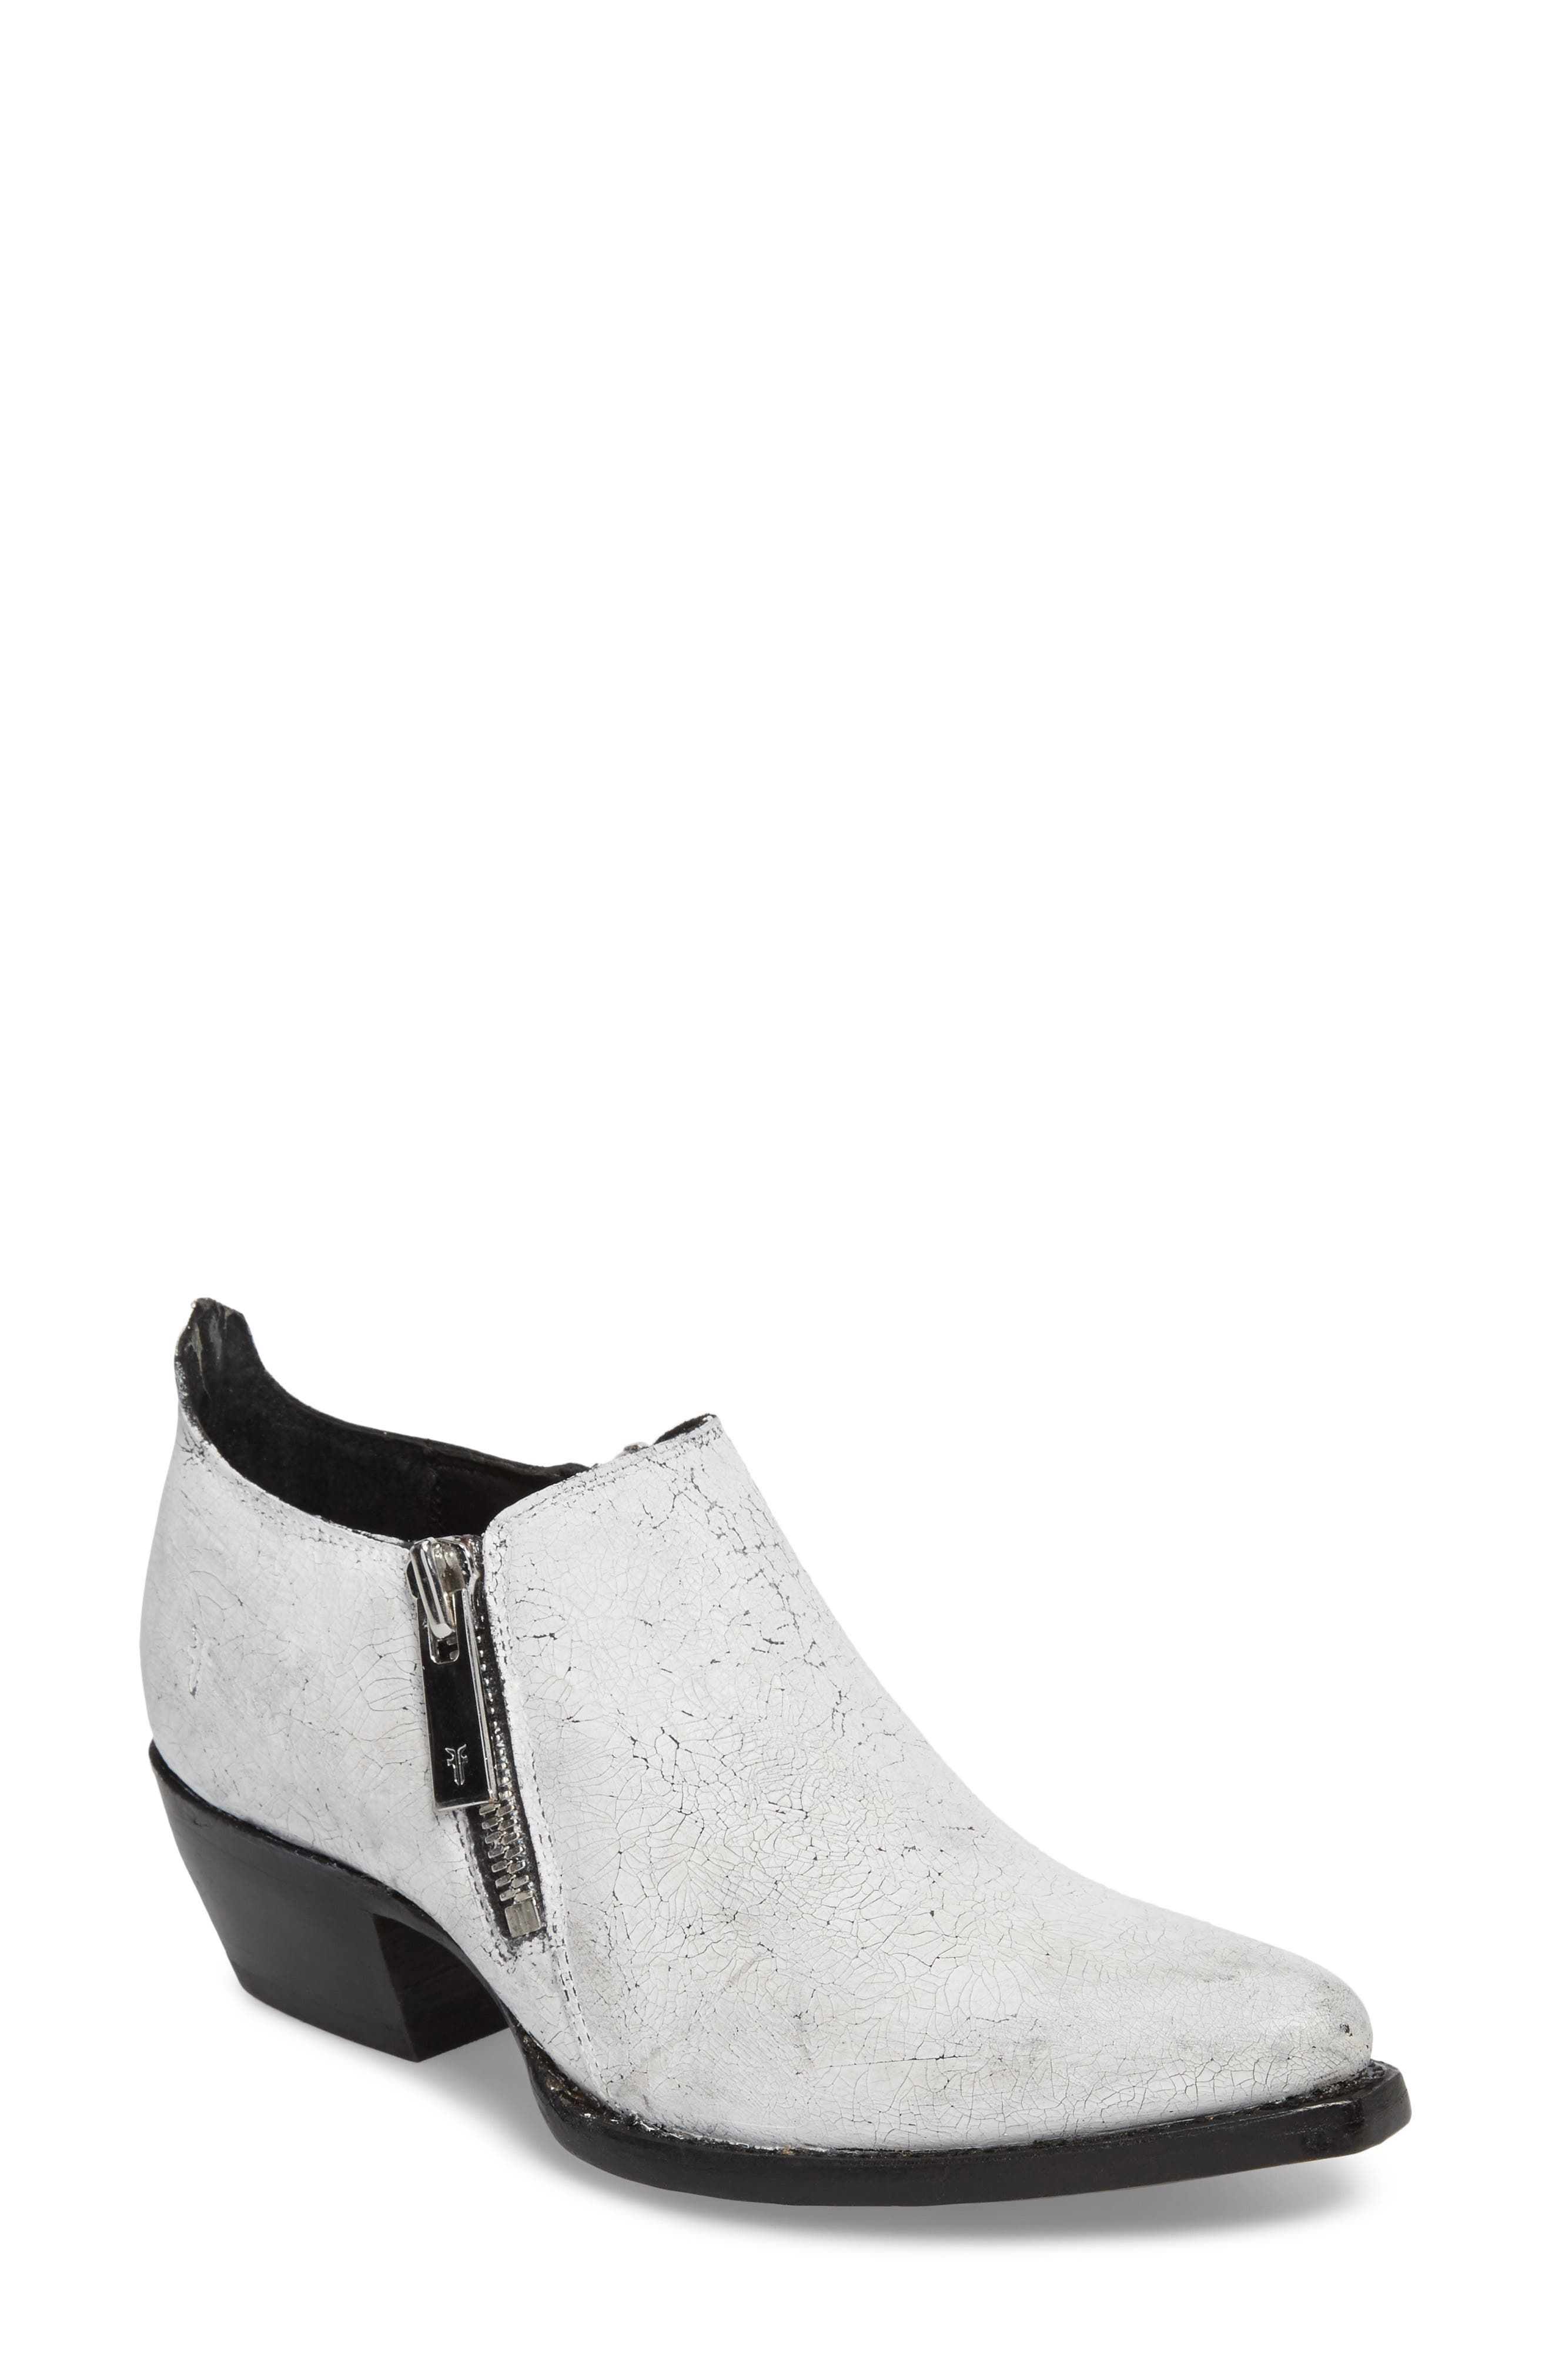 FRYE Sacha Double Zip Bootie, Main, color, WHITE